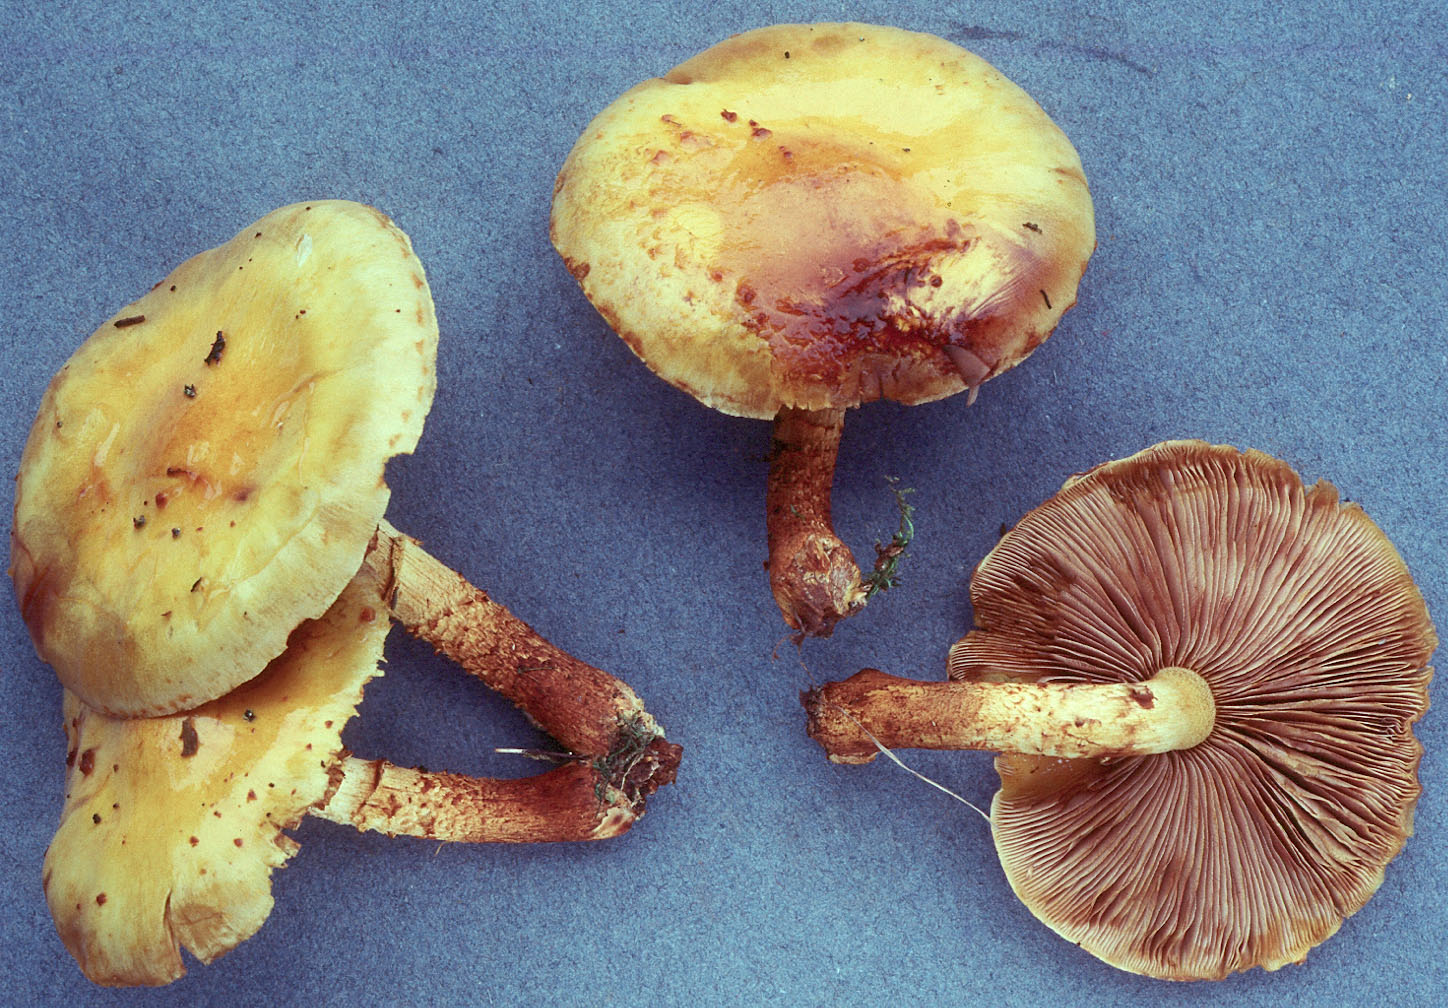 Pholiota aurivella